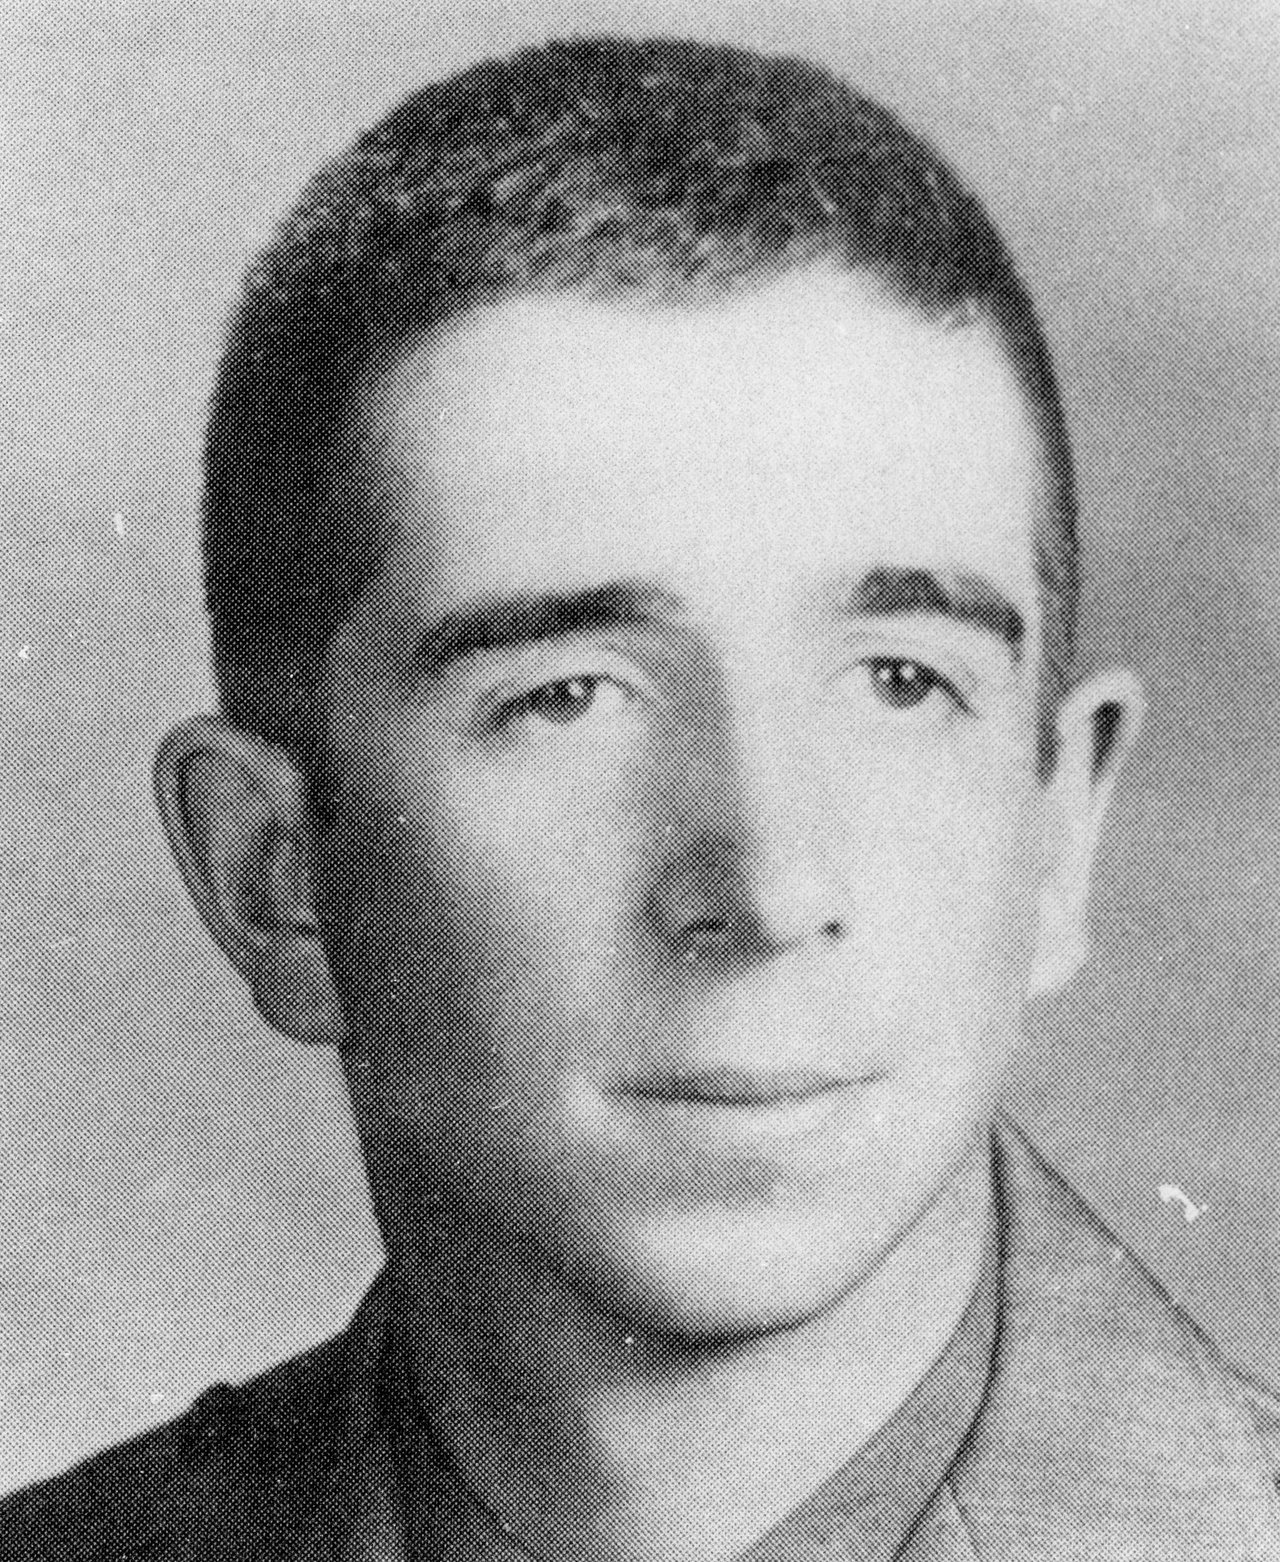 January 27, 1973 - Trooper Robert M. Semrov